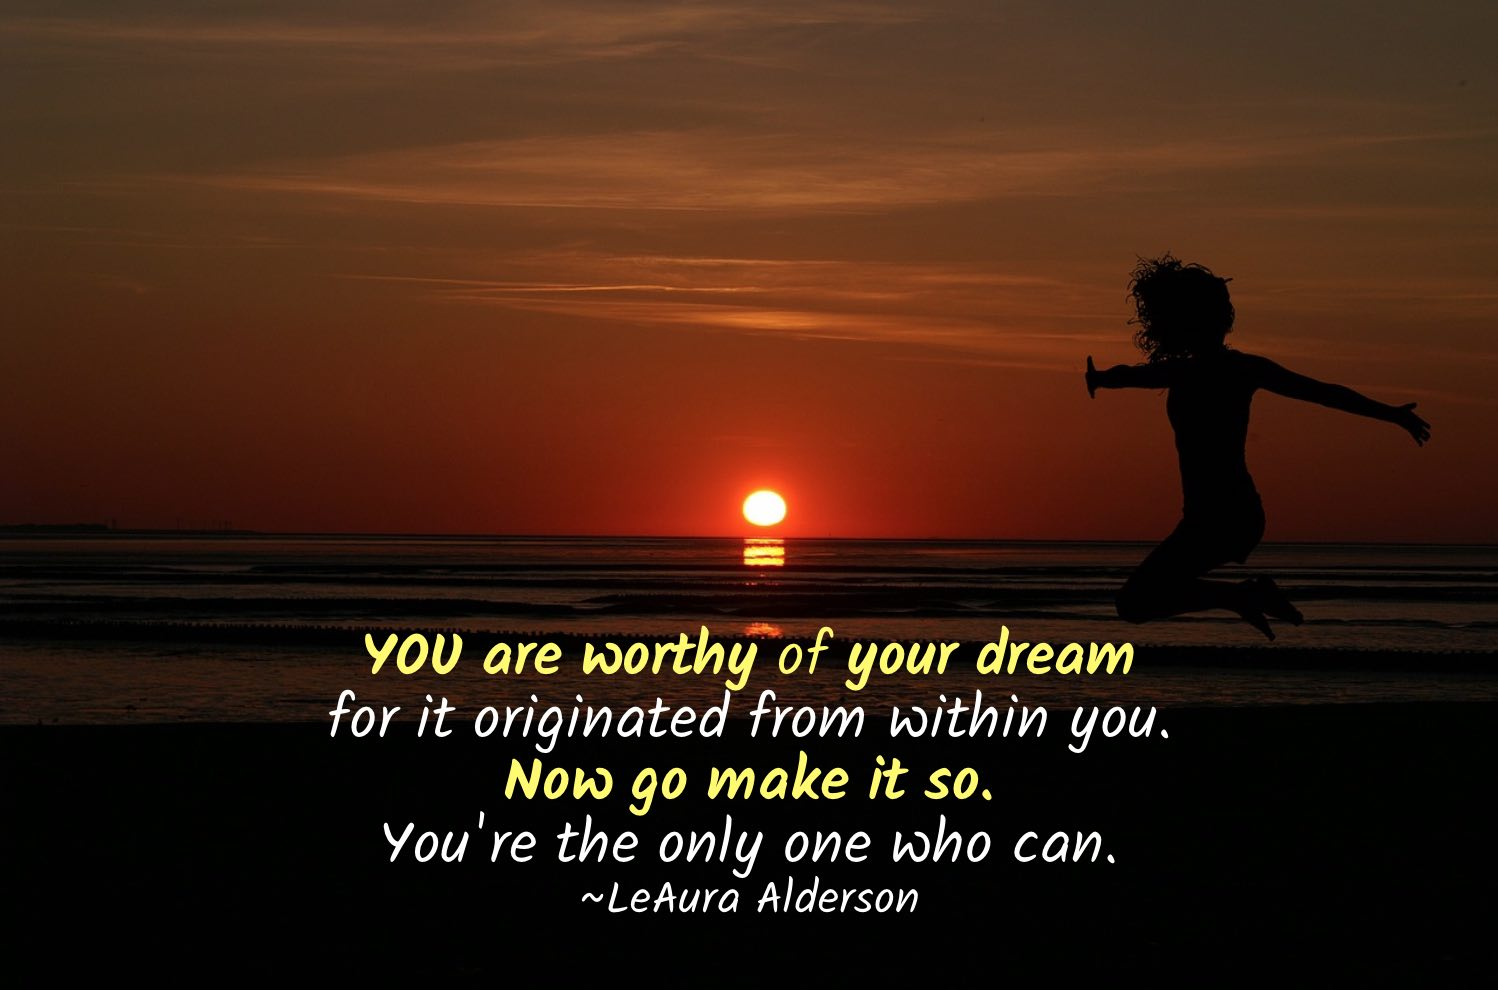 YOU are worthy of your dream for it originated from within you. Now go make it so. You're the only one who can.~LeAura Alderson, iCreateDaily.com® #IfYouBelieveItYouCanAchieveIt #YourDreams #YouAreWorthy #DreamBig #FollowYourHeart #PursueYourDreams